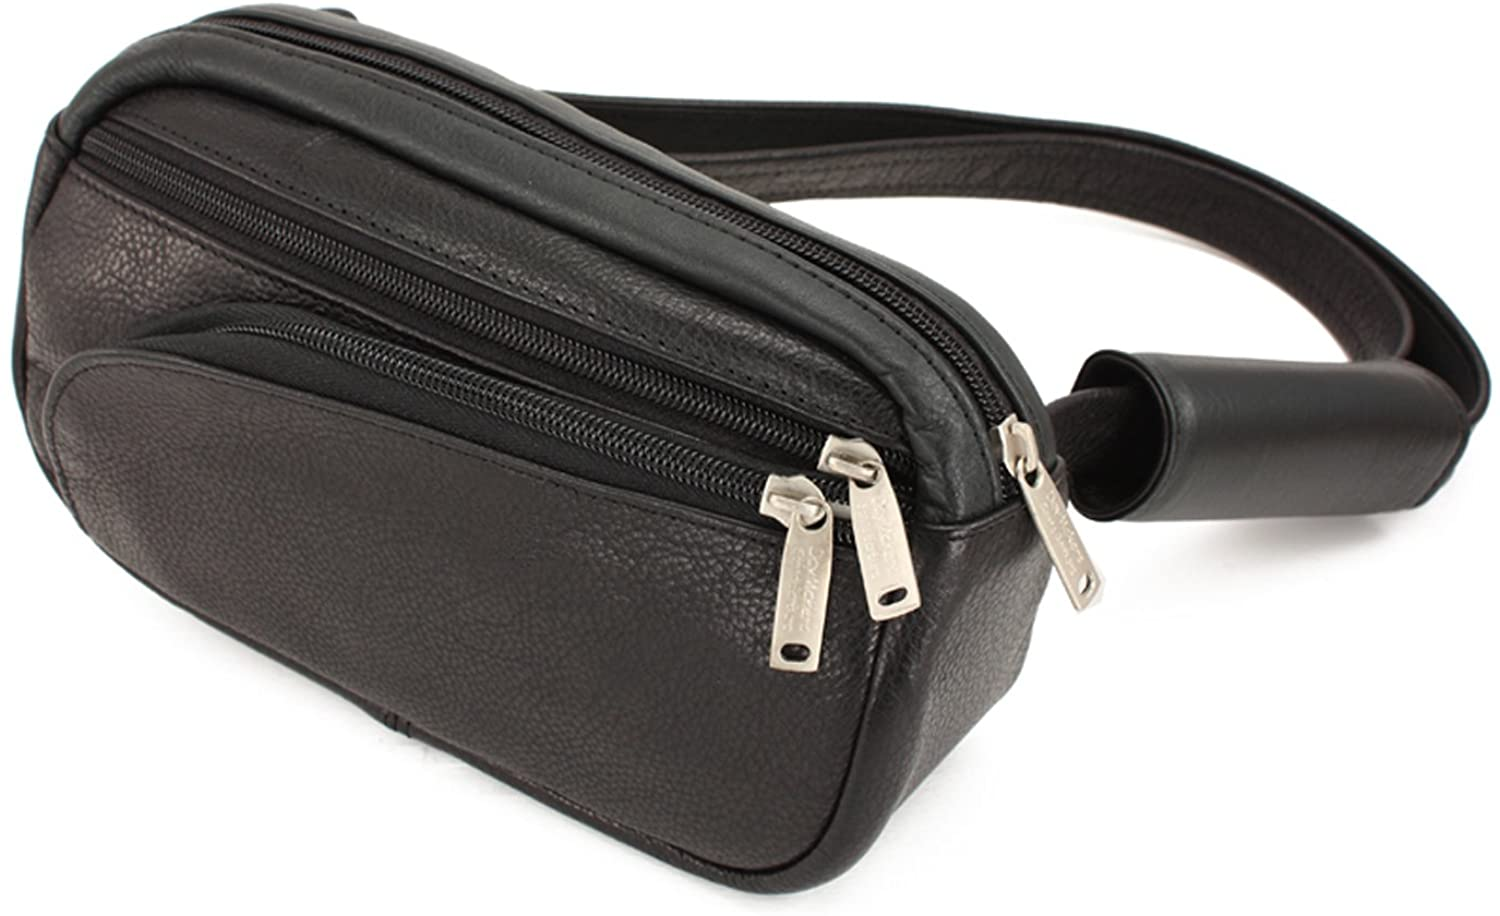 DayMakers BeSafeBags HipSafe Anti-Theft Security Waist Pack w/Organizer, Small, Black Leather